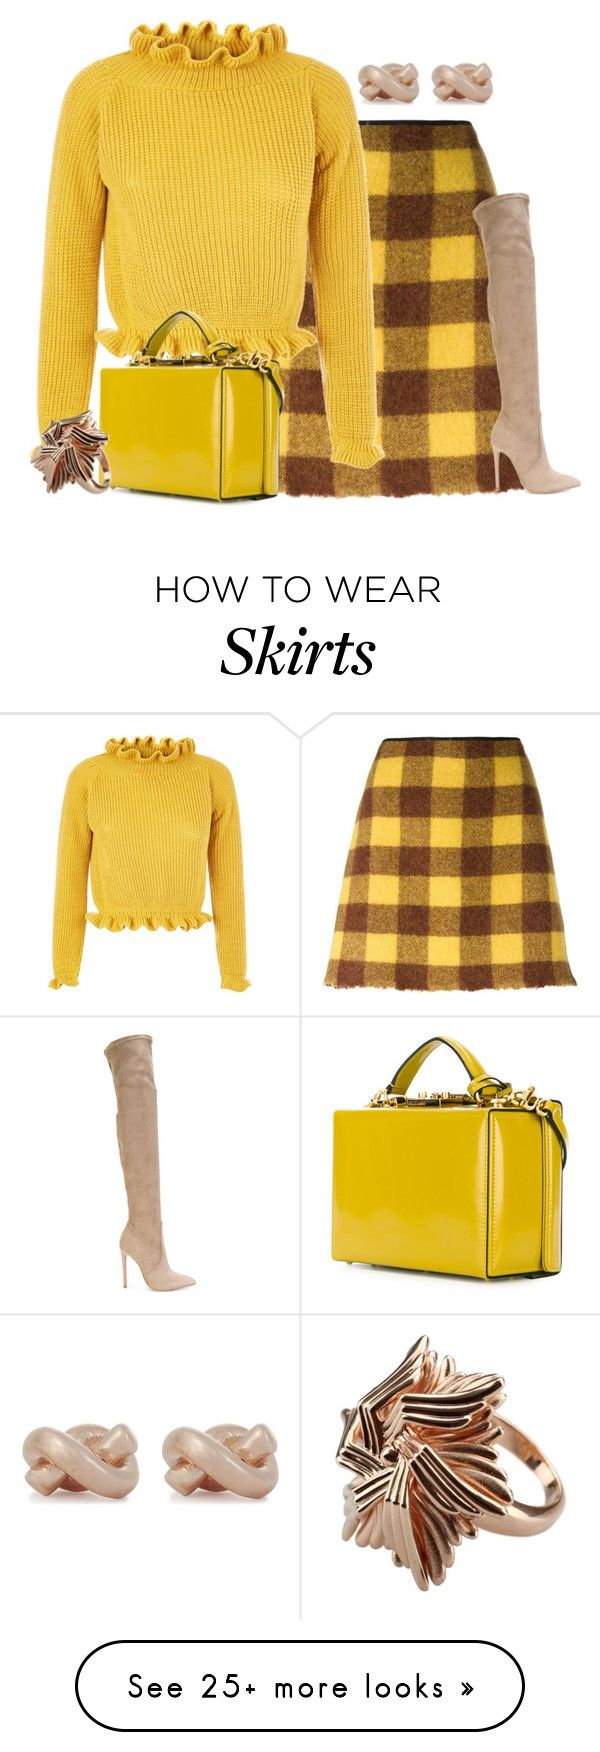 """""""Wool skirt"""" by borntoread on Polyvore featuring N°21, Gianni Renzi, Mark Cross and Kate Spade"""